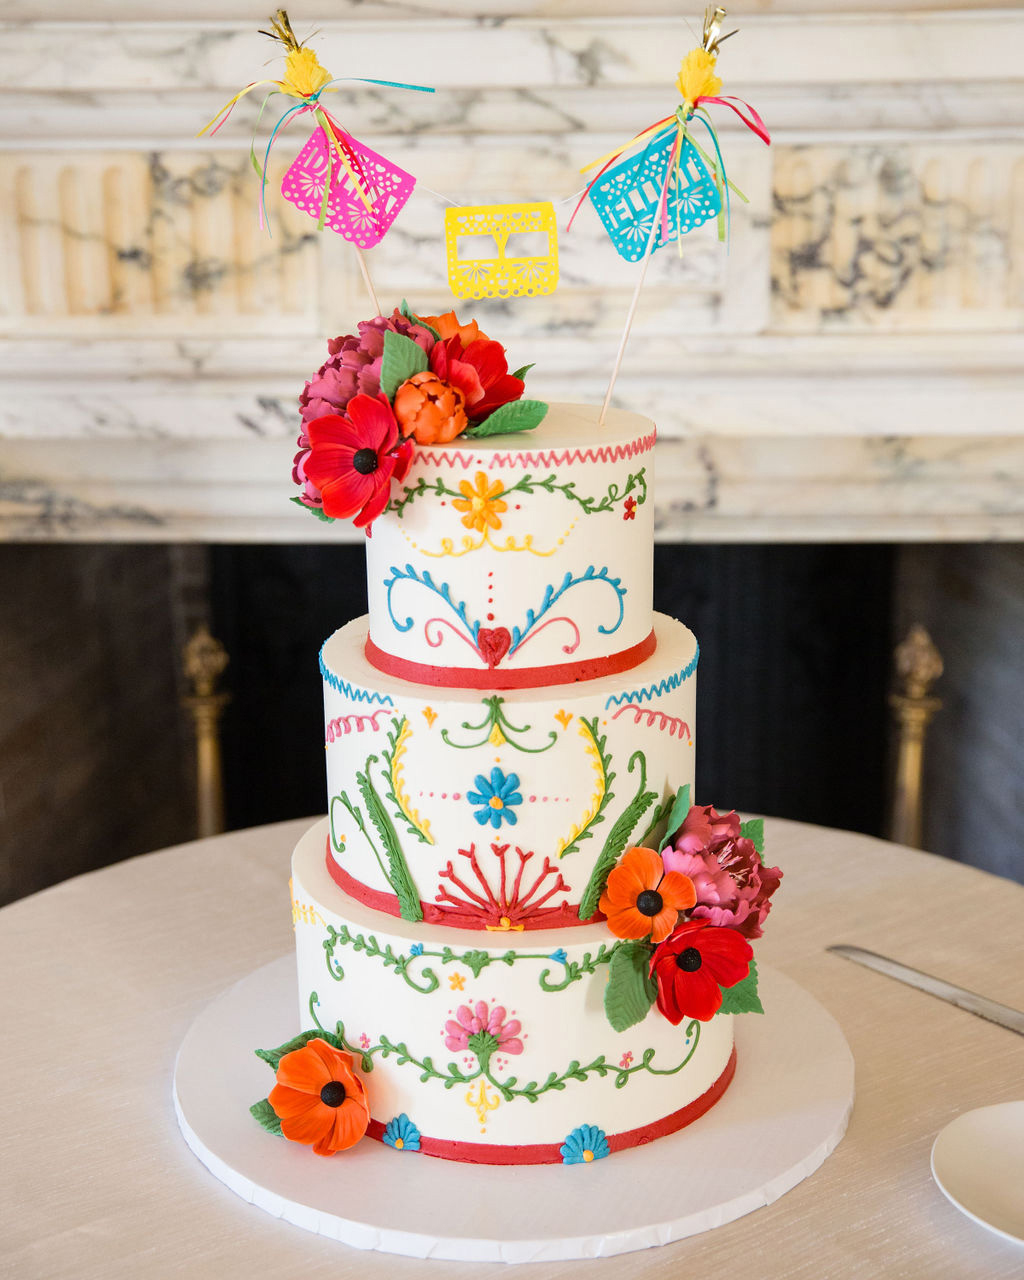 A Colorful Wedding Cake